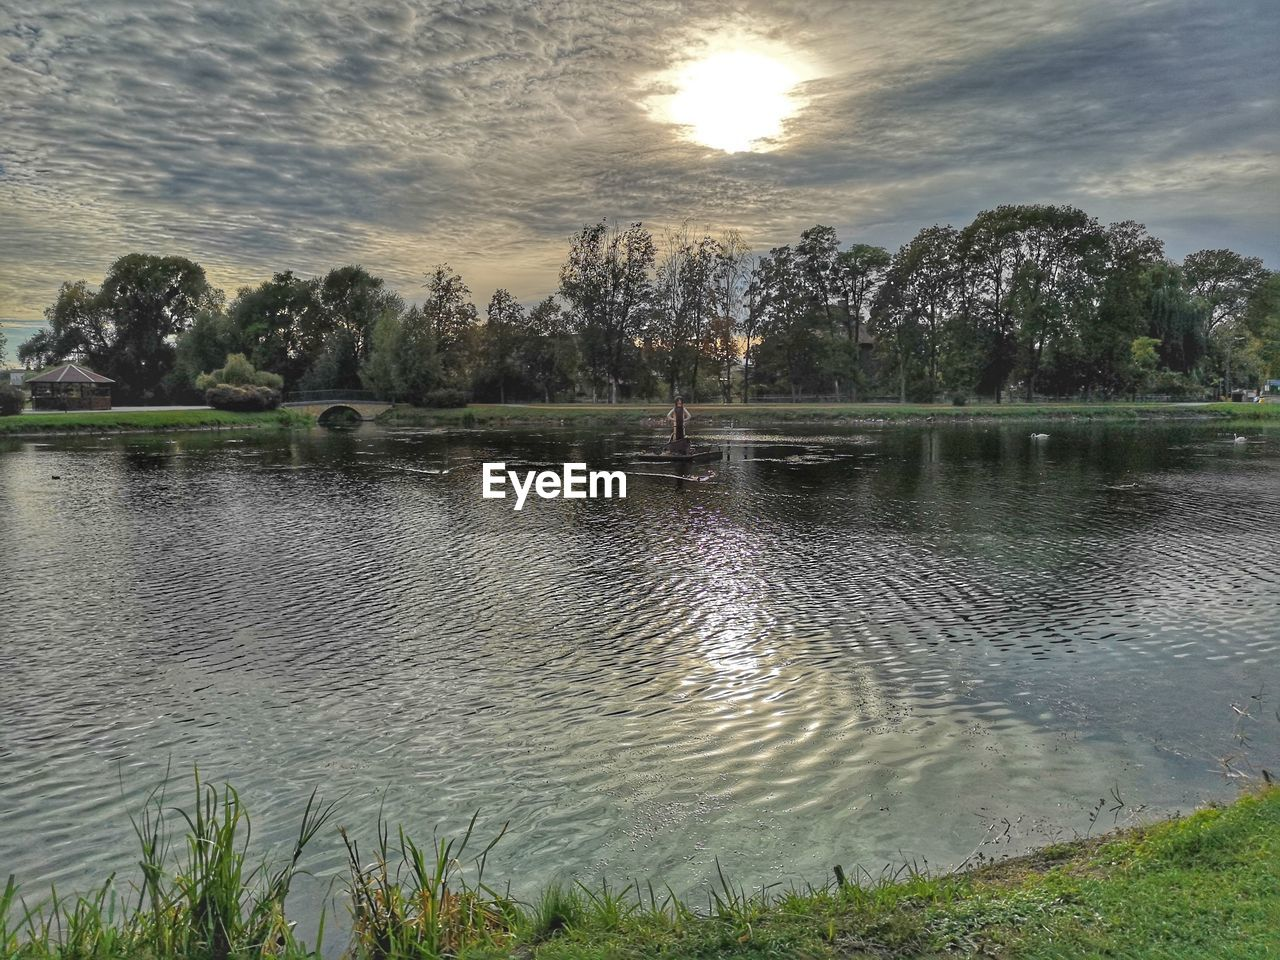 water, sky, plant, beauty in nature, scenics - nature, tree, tranquil scene, cloud - sky, tranquility, lake, no people, reflection, nature, non-urban scene, growth, idyllic, sunset, day, grass, outdoors